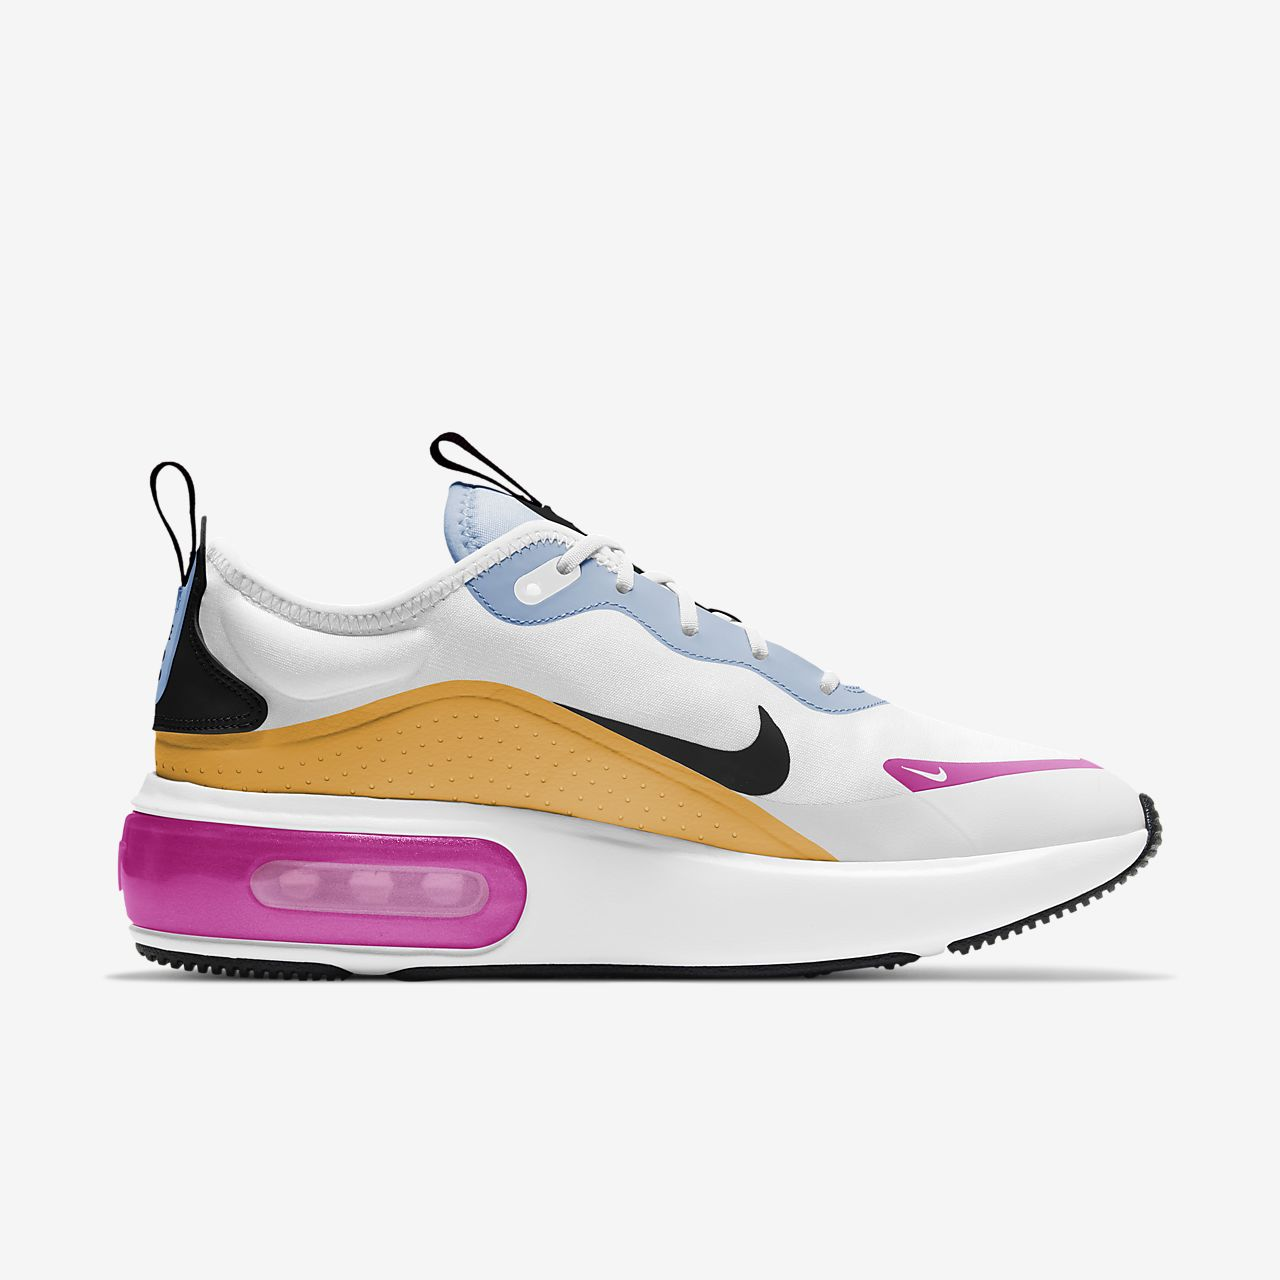 nike air max 270 blanco y azul